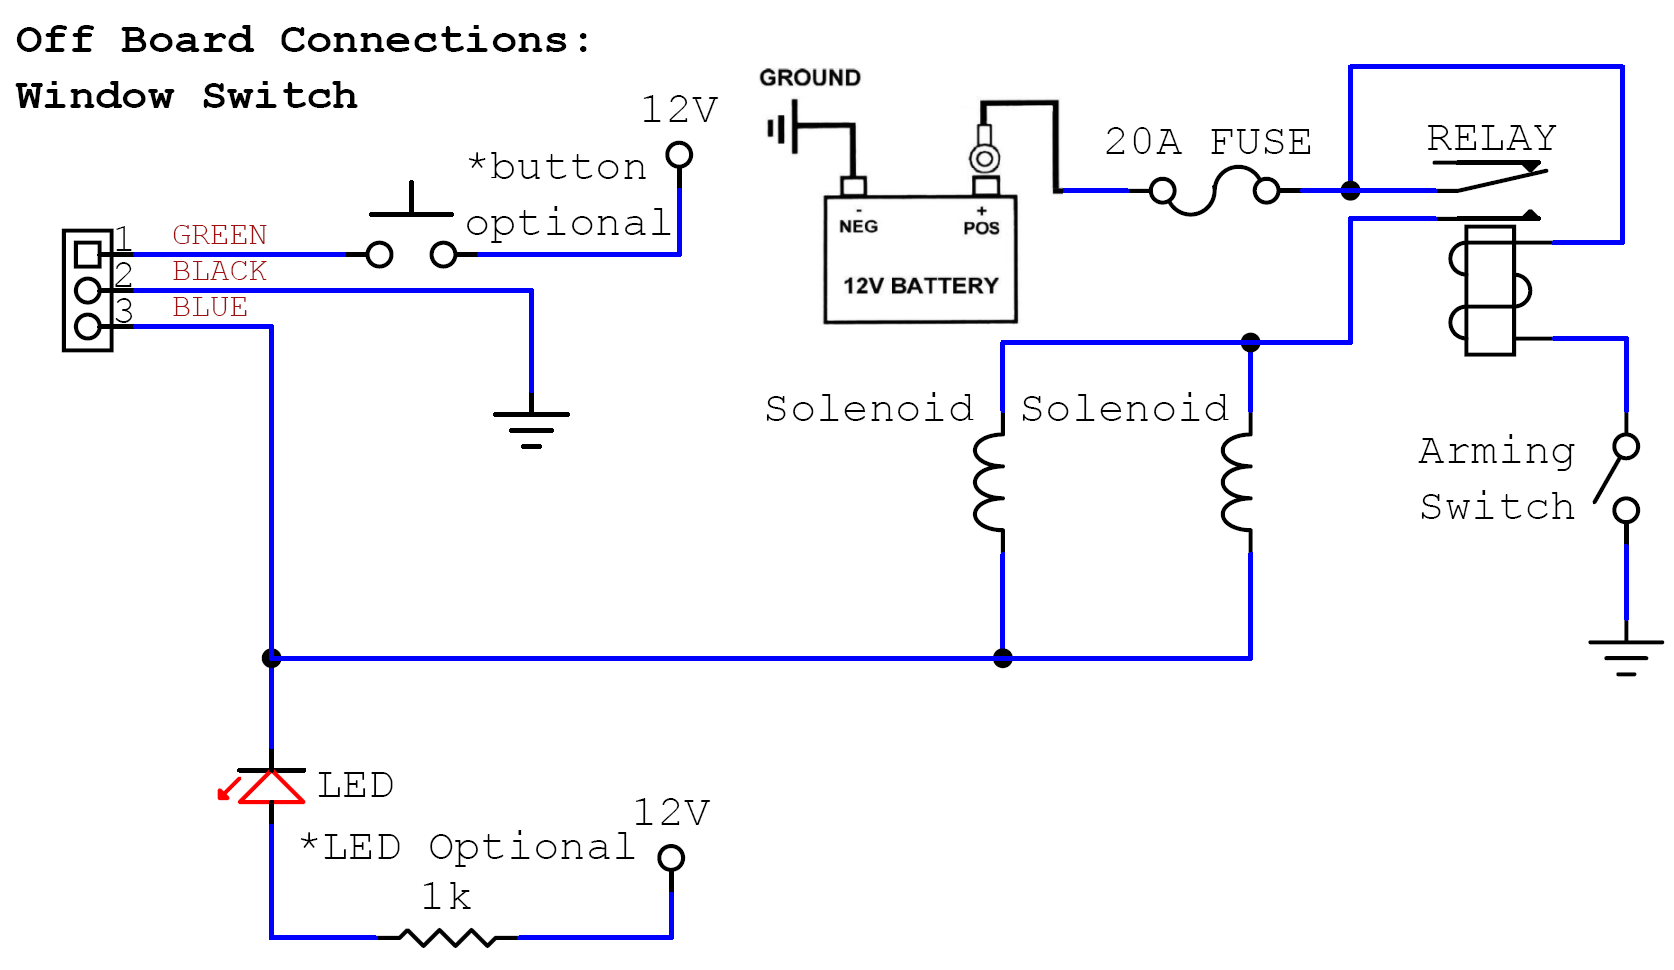 Wiring Diagram For Nissan 350z Wot Schema Diagrams Box Two Step Rev Limiter And No Lift Shifting Closed Archive Leaf